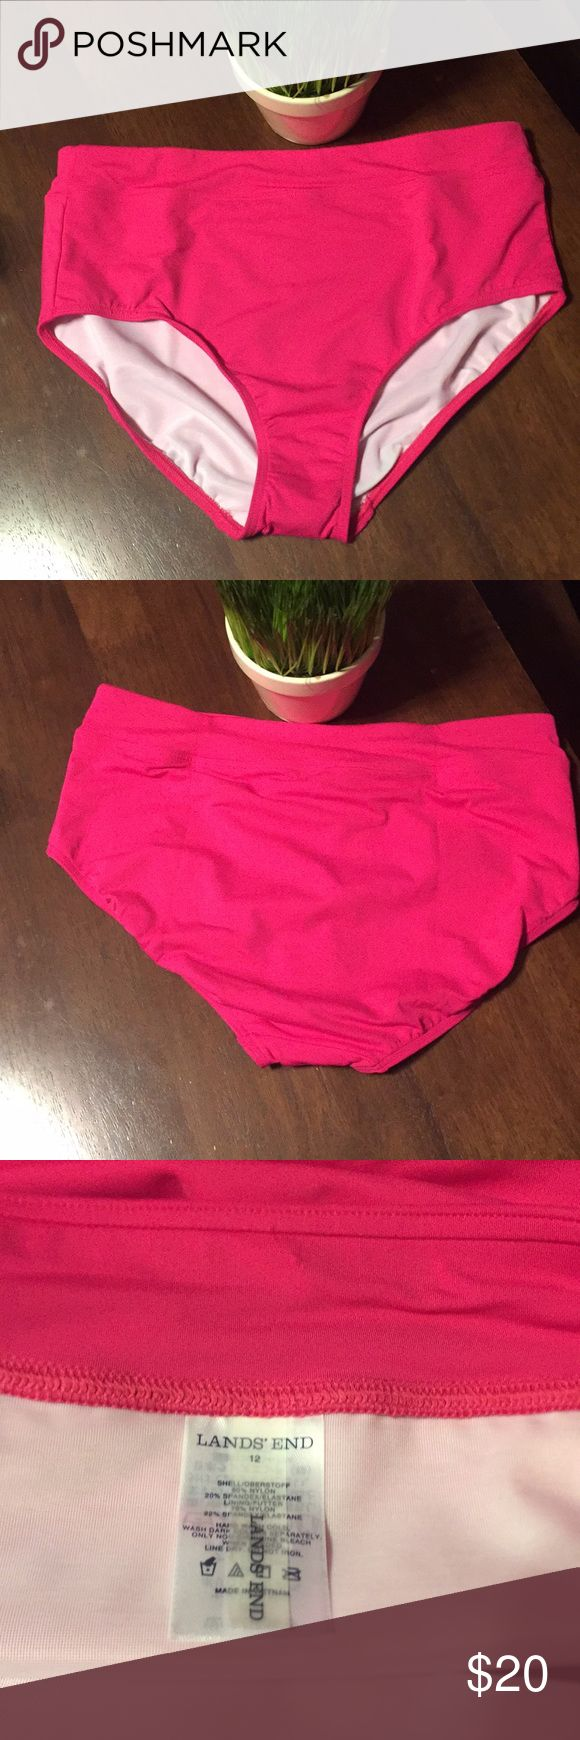 """[Lands' End] Pink Bikini Bottom Sz 12 NWOT [Lands' End] Pink Bikini Bottom Sz 12   Measurements laid flat approximately: L to l12.5""""/Across band 15""""    NWOT- Above tag small puncture where tag was.  🚫Trades/modeling  I don't discuss price in comment section.  ✅Use (OFFER)/Buy now tabs.👍🏼👍🏼 -Happy Poshing! Lands' End Swim Bikinis"""